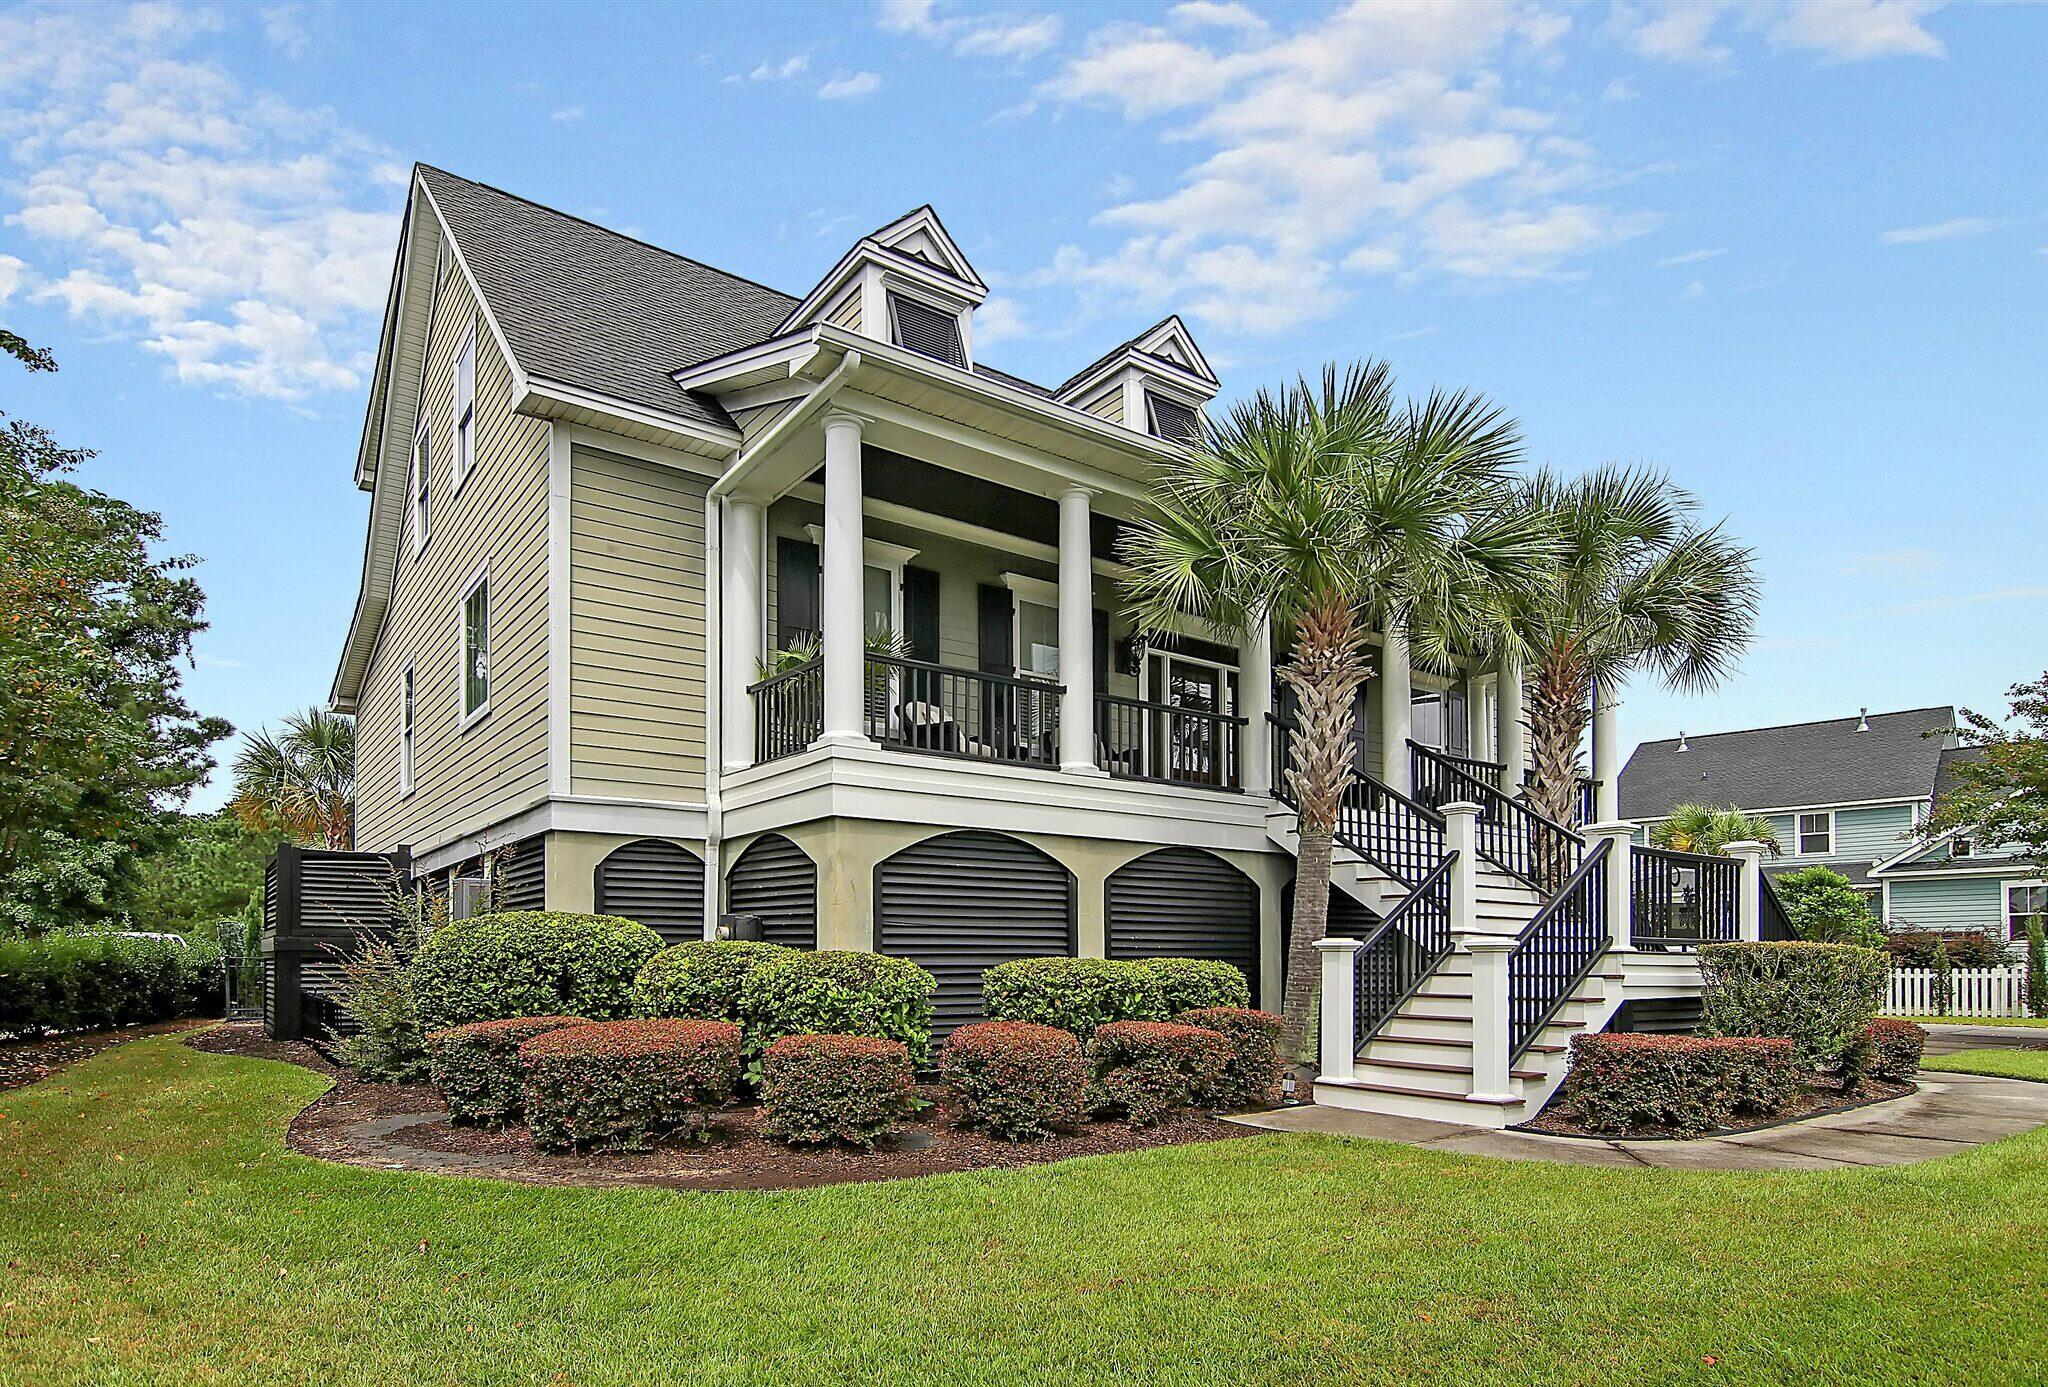 Rivertowne On The Wando Homes For Sale - 2128 Sandy Point, Mount Pleasant, SC - 39